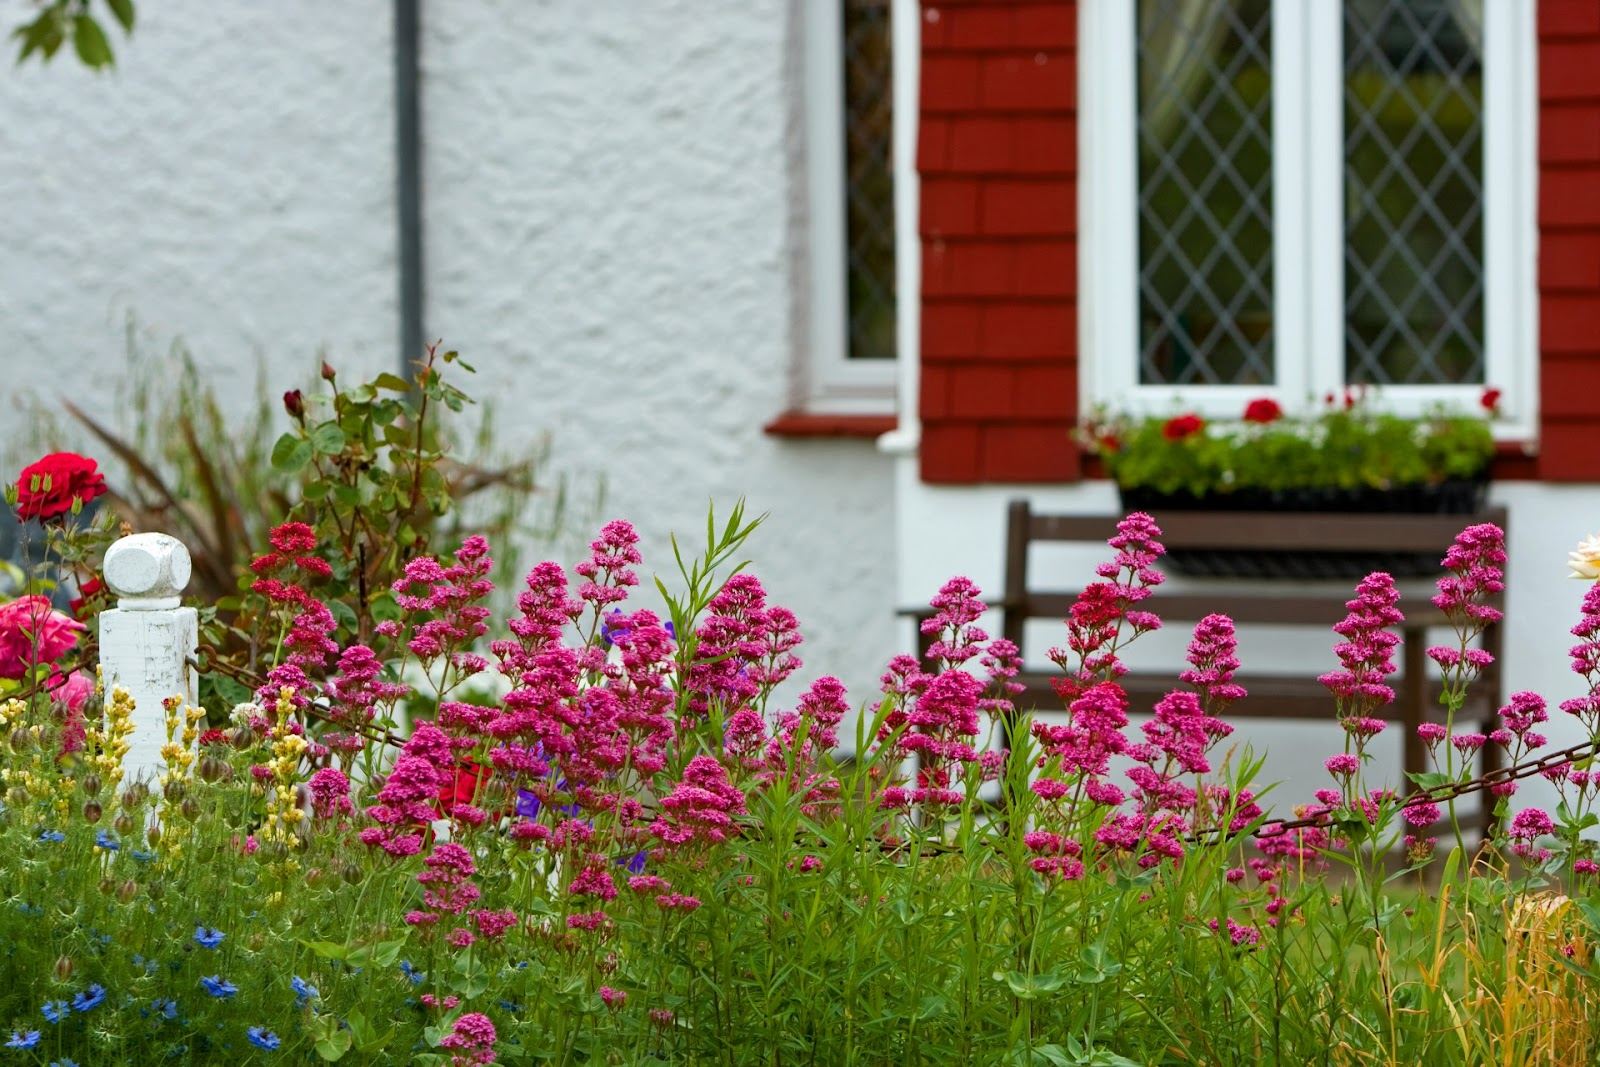 flowers-in-cottage-garden.jpg